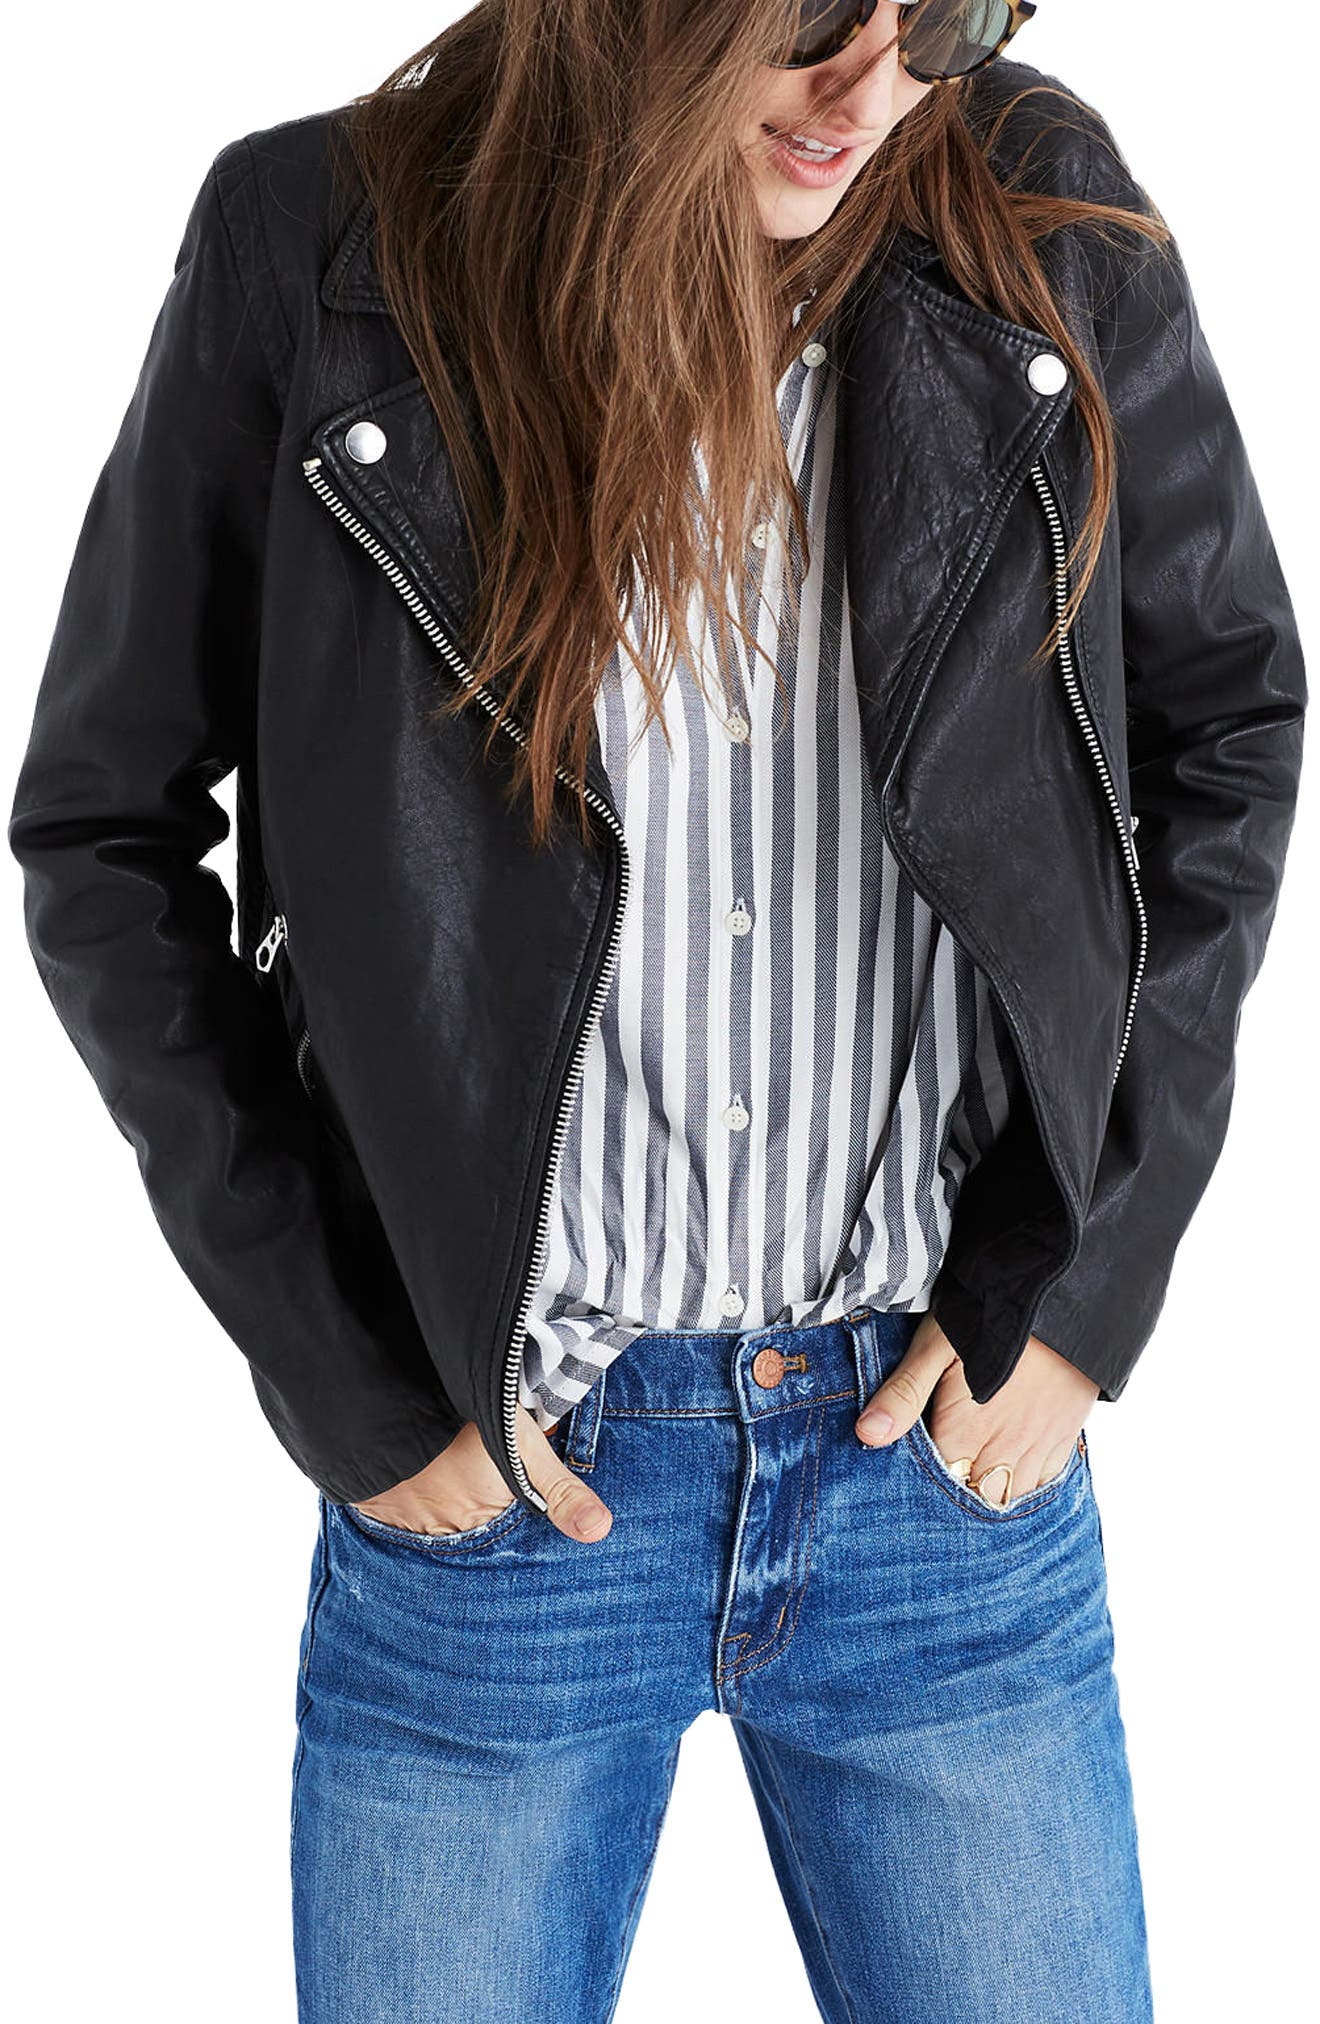 Alternate Image 1 Selected - Madewell Washed Leather Moto Jacket